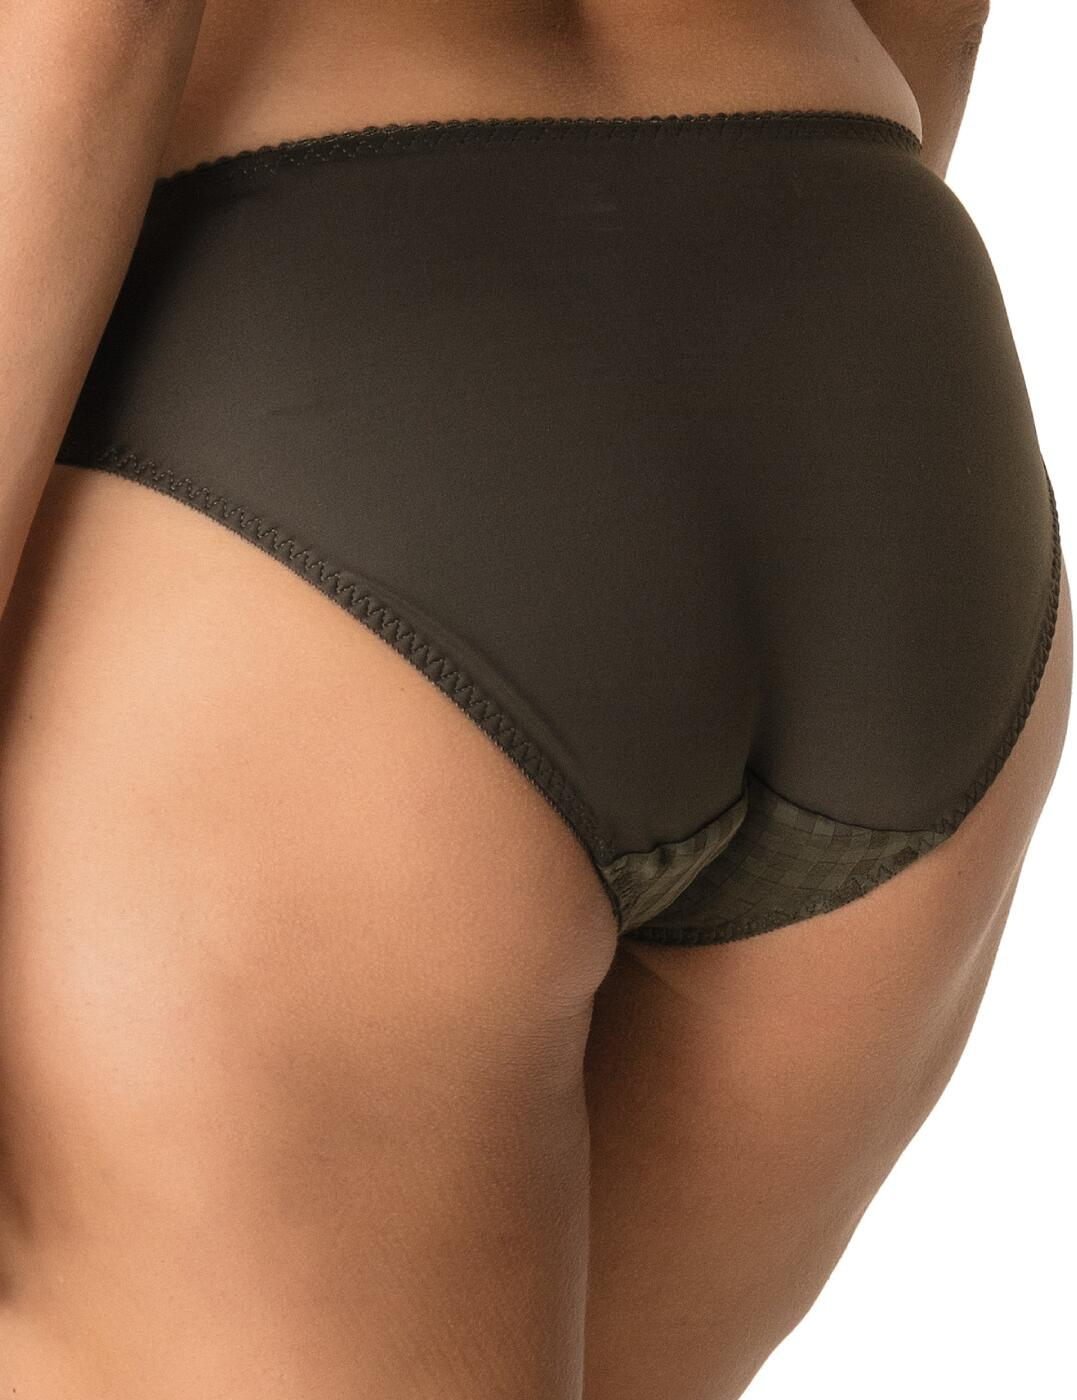 Prima-Donna-Madison-Rio-Briefs-Knickers-0562120-Womens-Luxury-Lingerie thumbnail 4